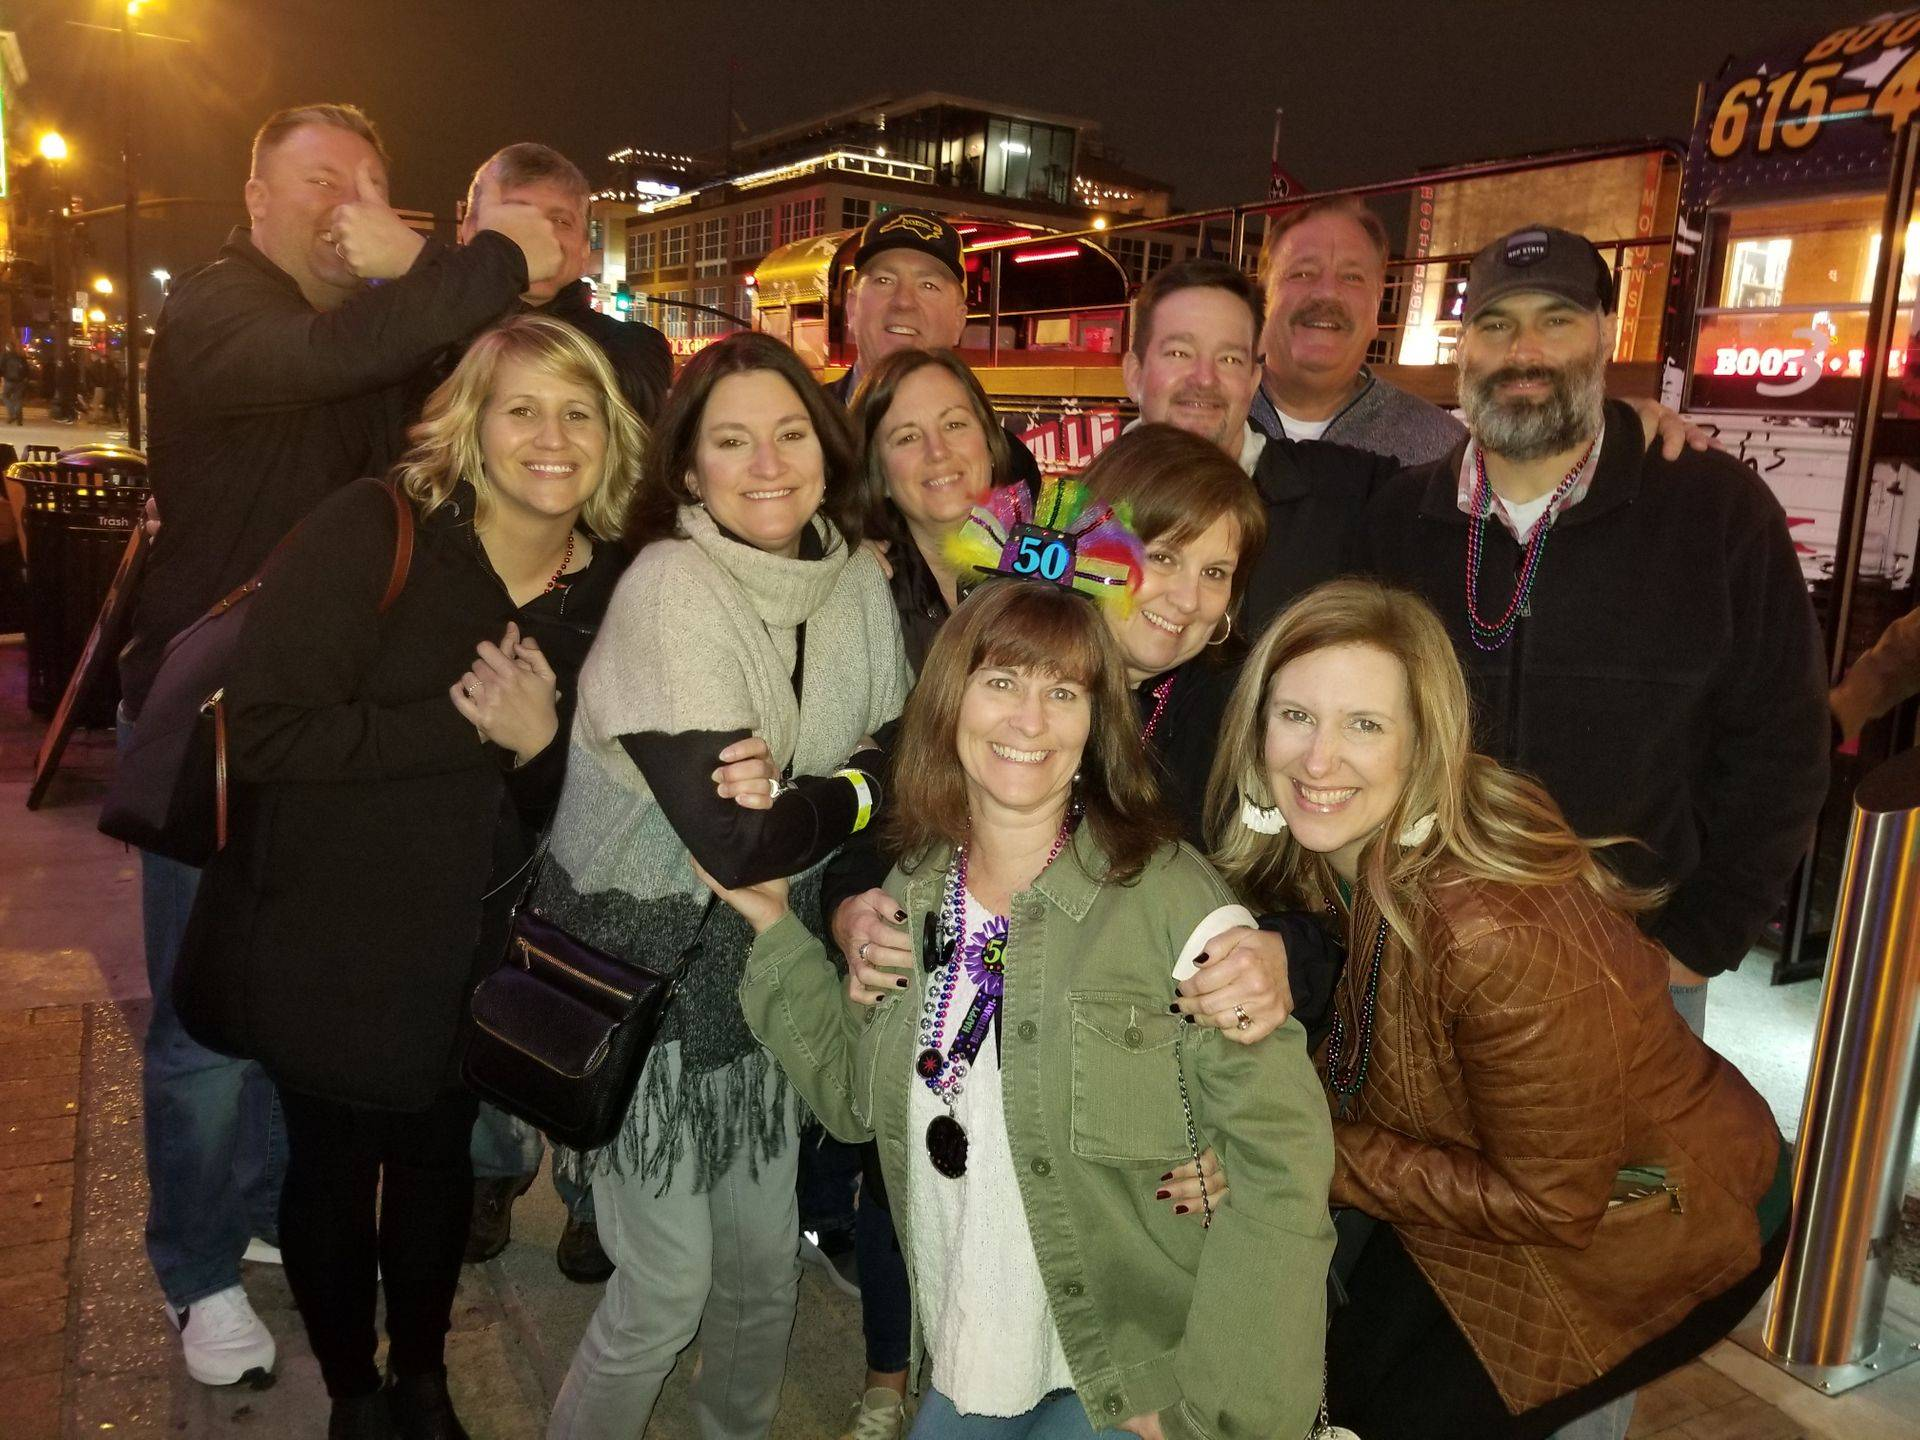 Great group of Canadian travelers to Nashville